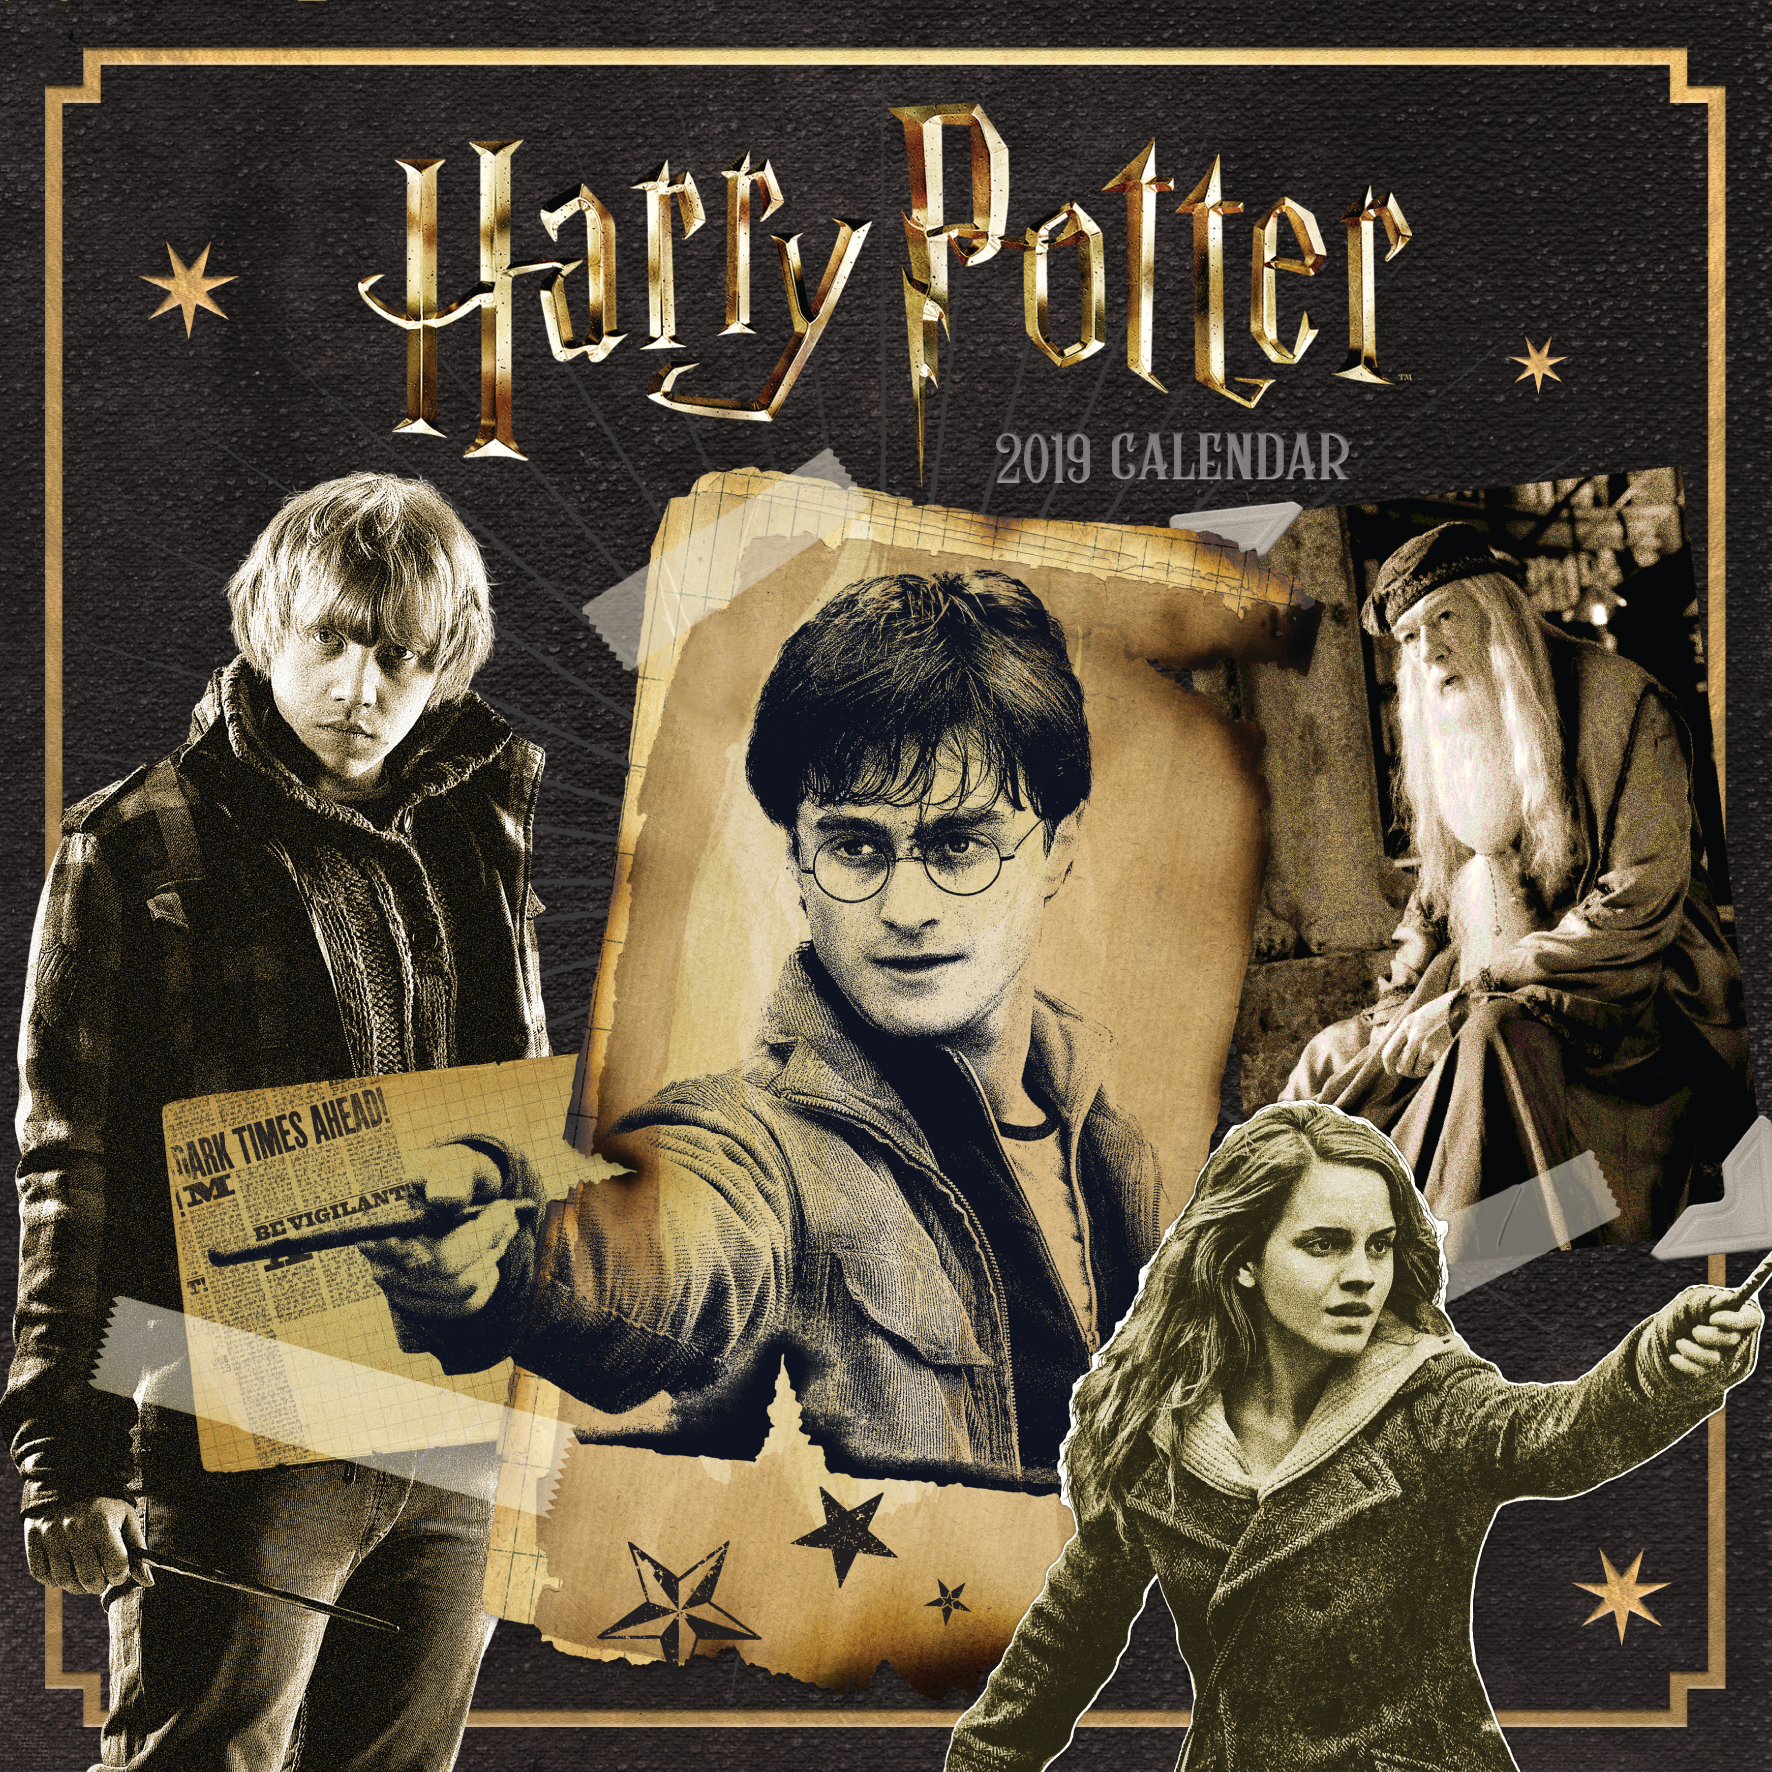 Above: The Harry Potter calendar sold 10% more than any other of Danilo's Top Ten entertainment titles.